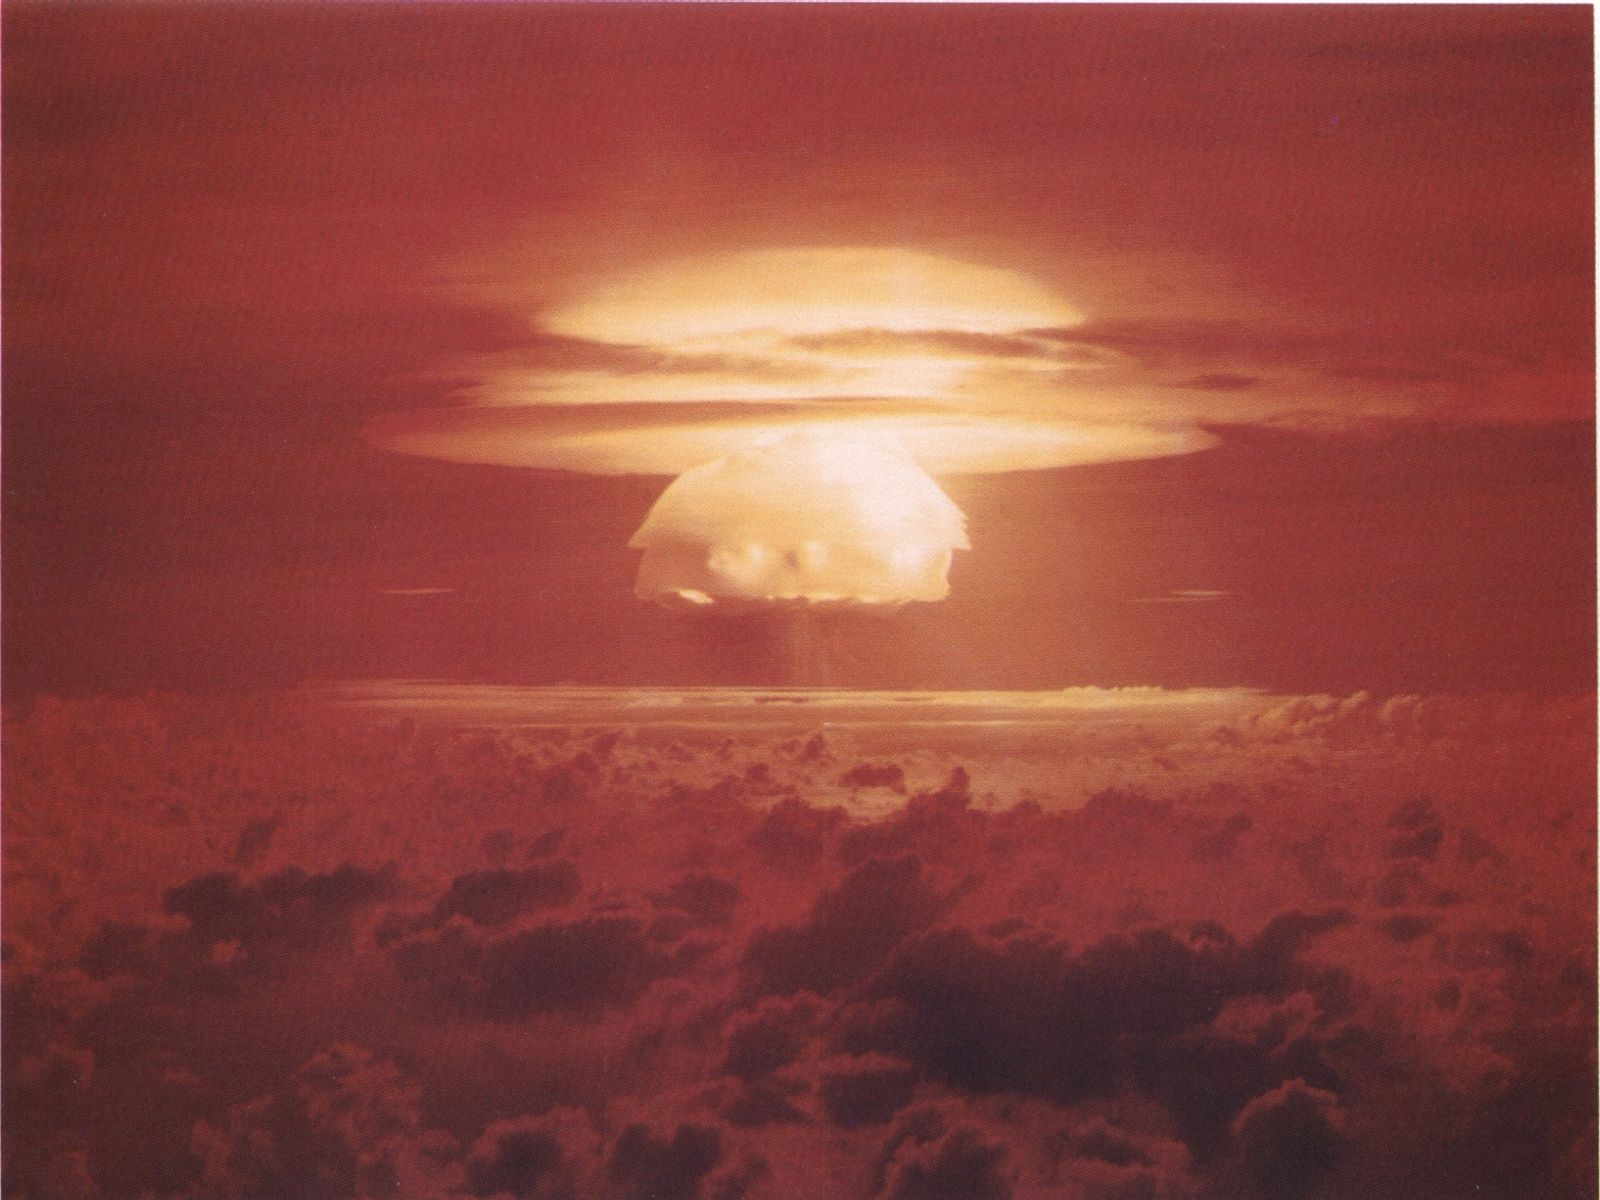 http://upload.wikimedia.org/wikipedia/commons/5/5d/Castle_Bravo_Blast.jpg